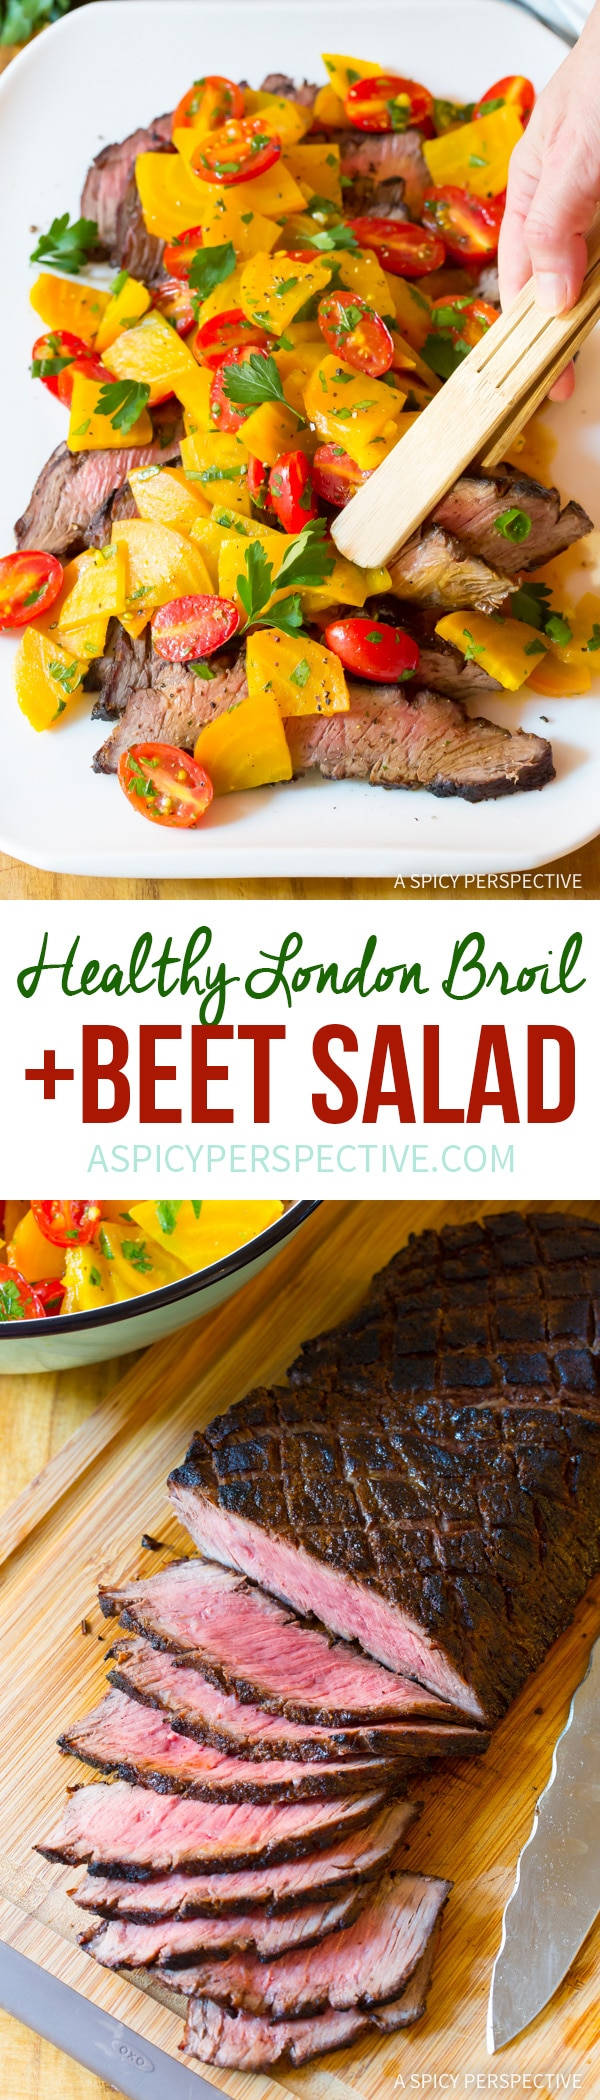 Delish & Low Carb London Broil Recipe with Golden Beet Salad #Healthy #GlutenFree #Paleo